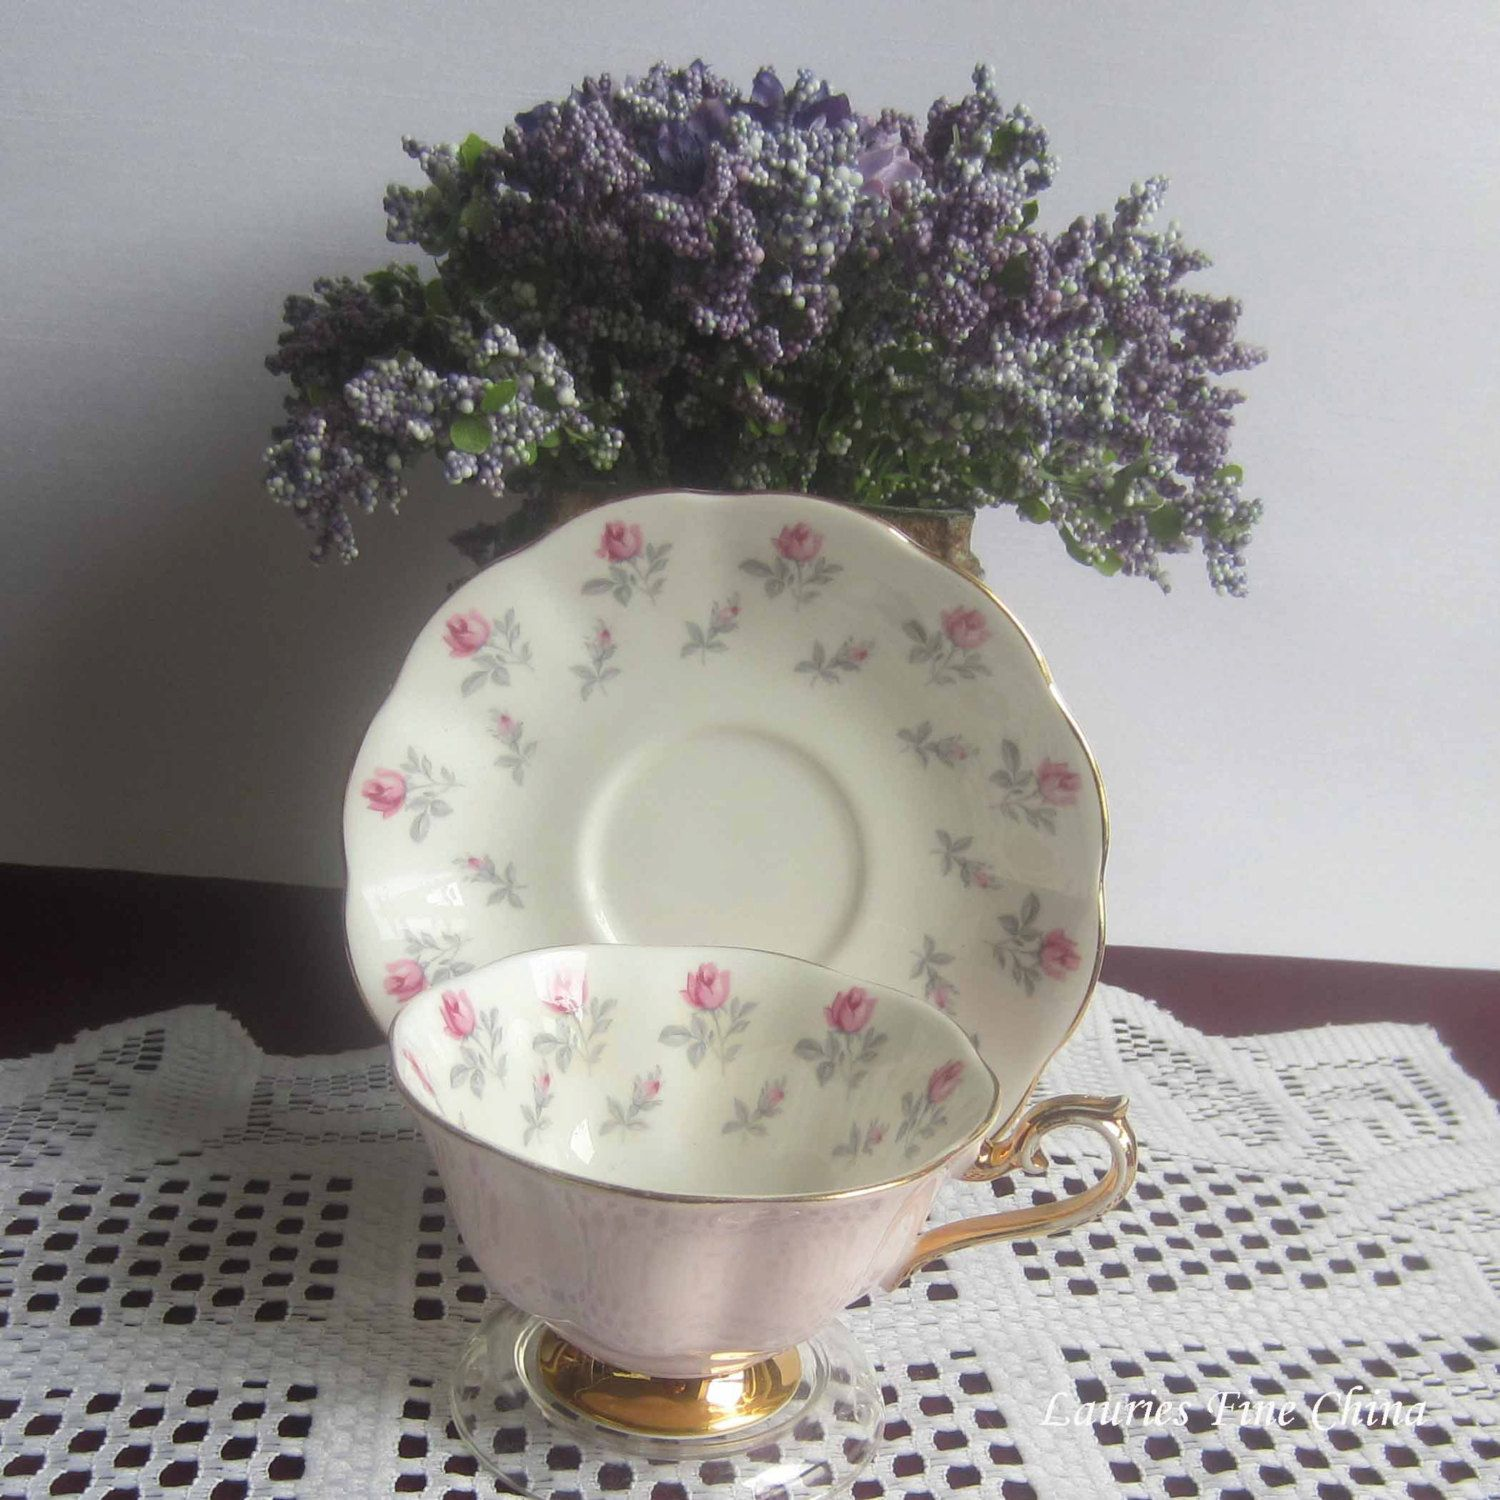 Free Shipping Royal Albert Un Named Pink Outer with Pink Rose buds inside - Bone China Tea Cup and Saucer by LauriesFineChina on Etsy